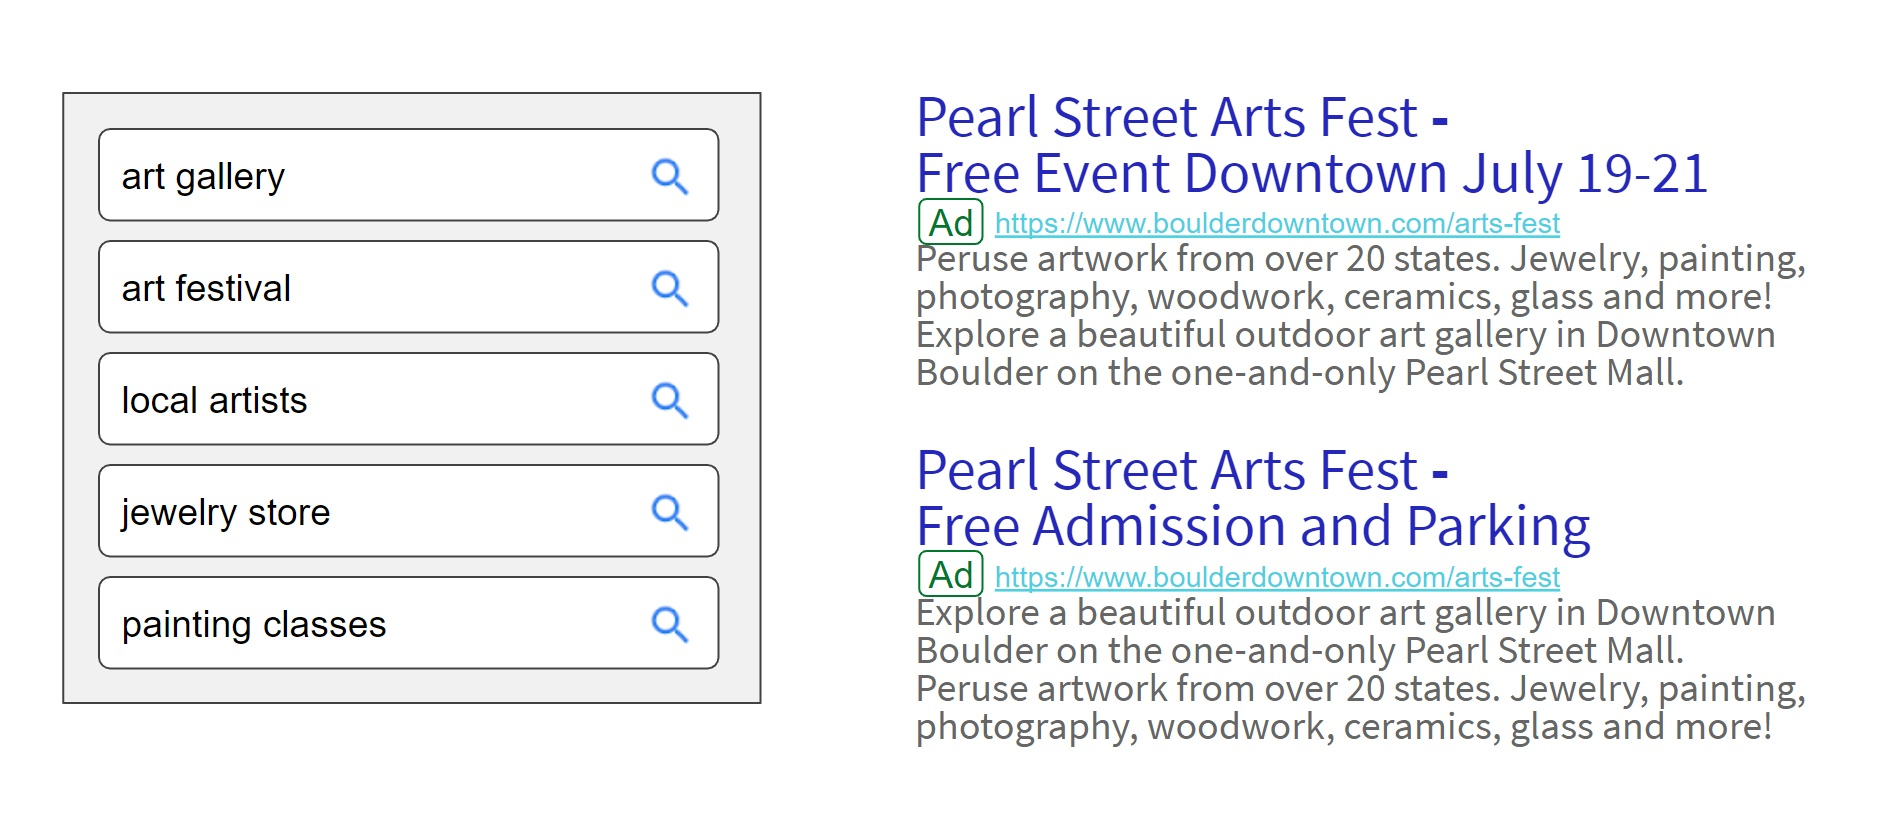 A sample of the Google Ads that ran for the Downtown Boulder Partnership. The list on the left shows some of the key phrases that would trigger these ads to appear in Google search results.